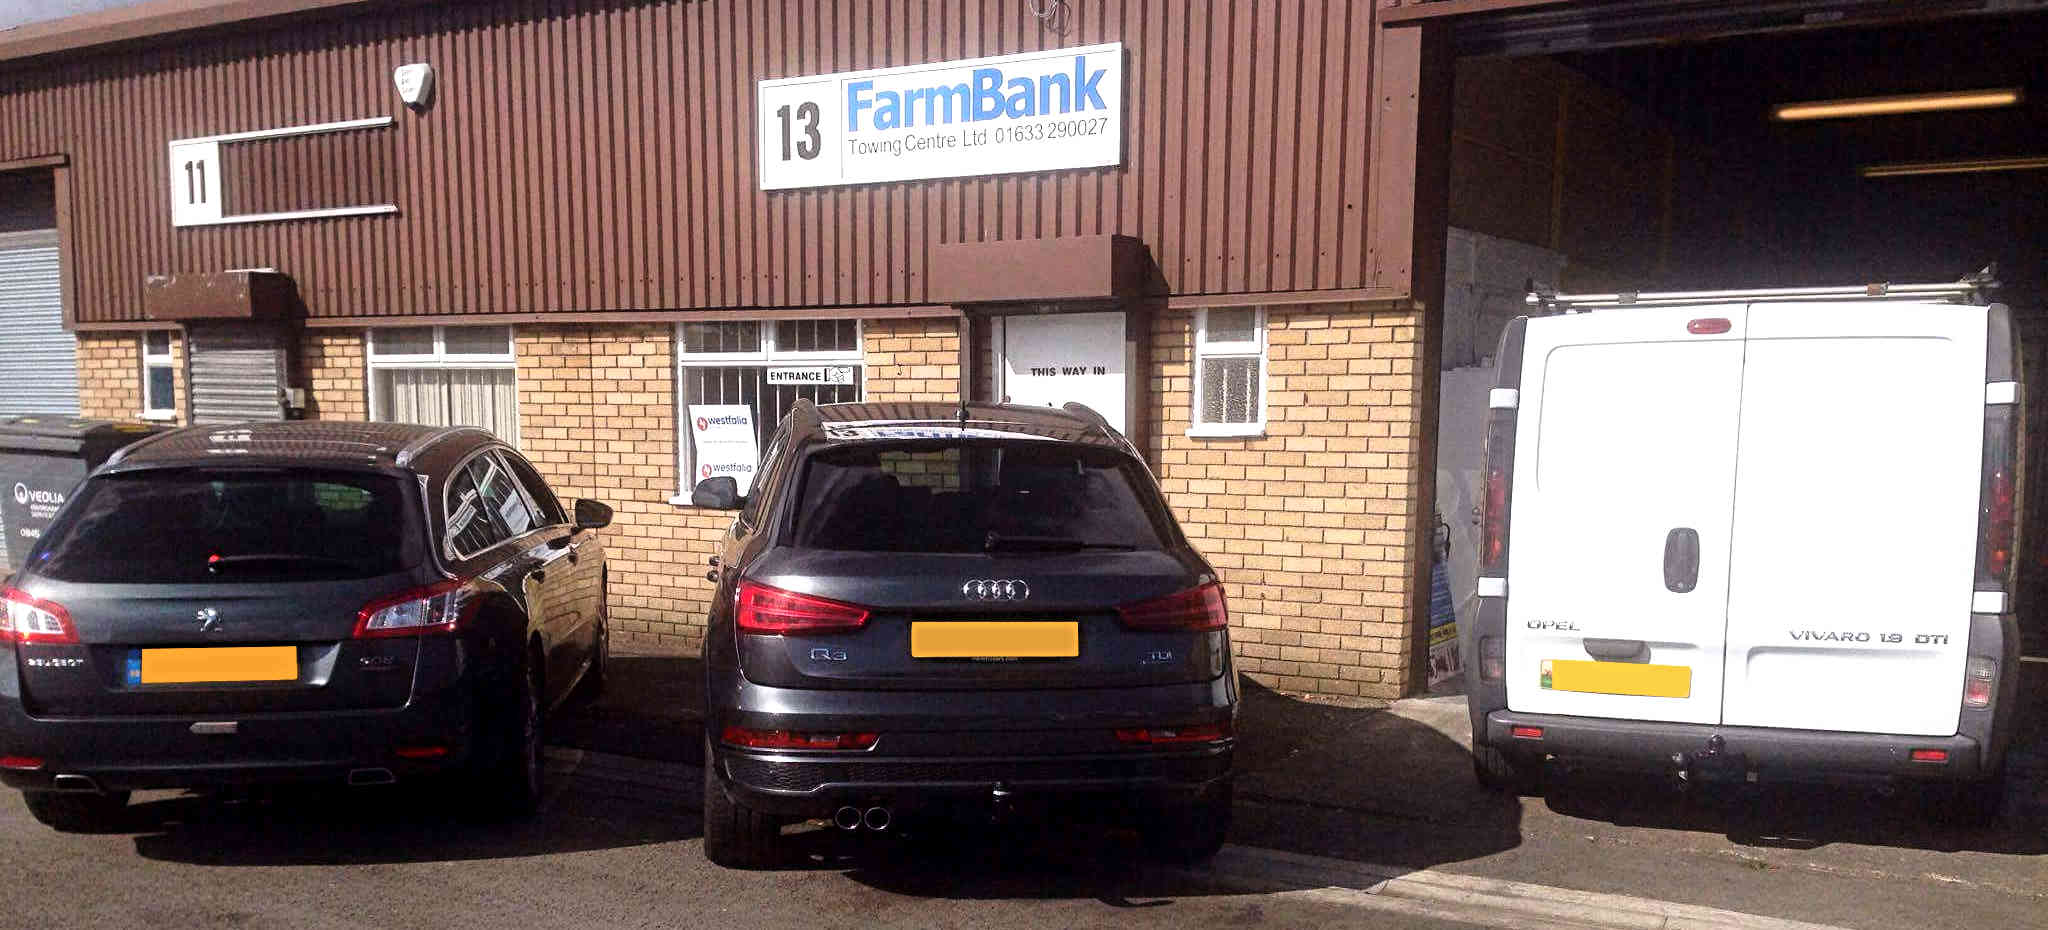 Farmbank Towing Centre Ltd